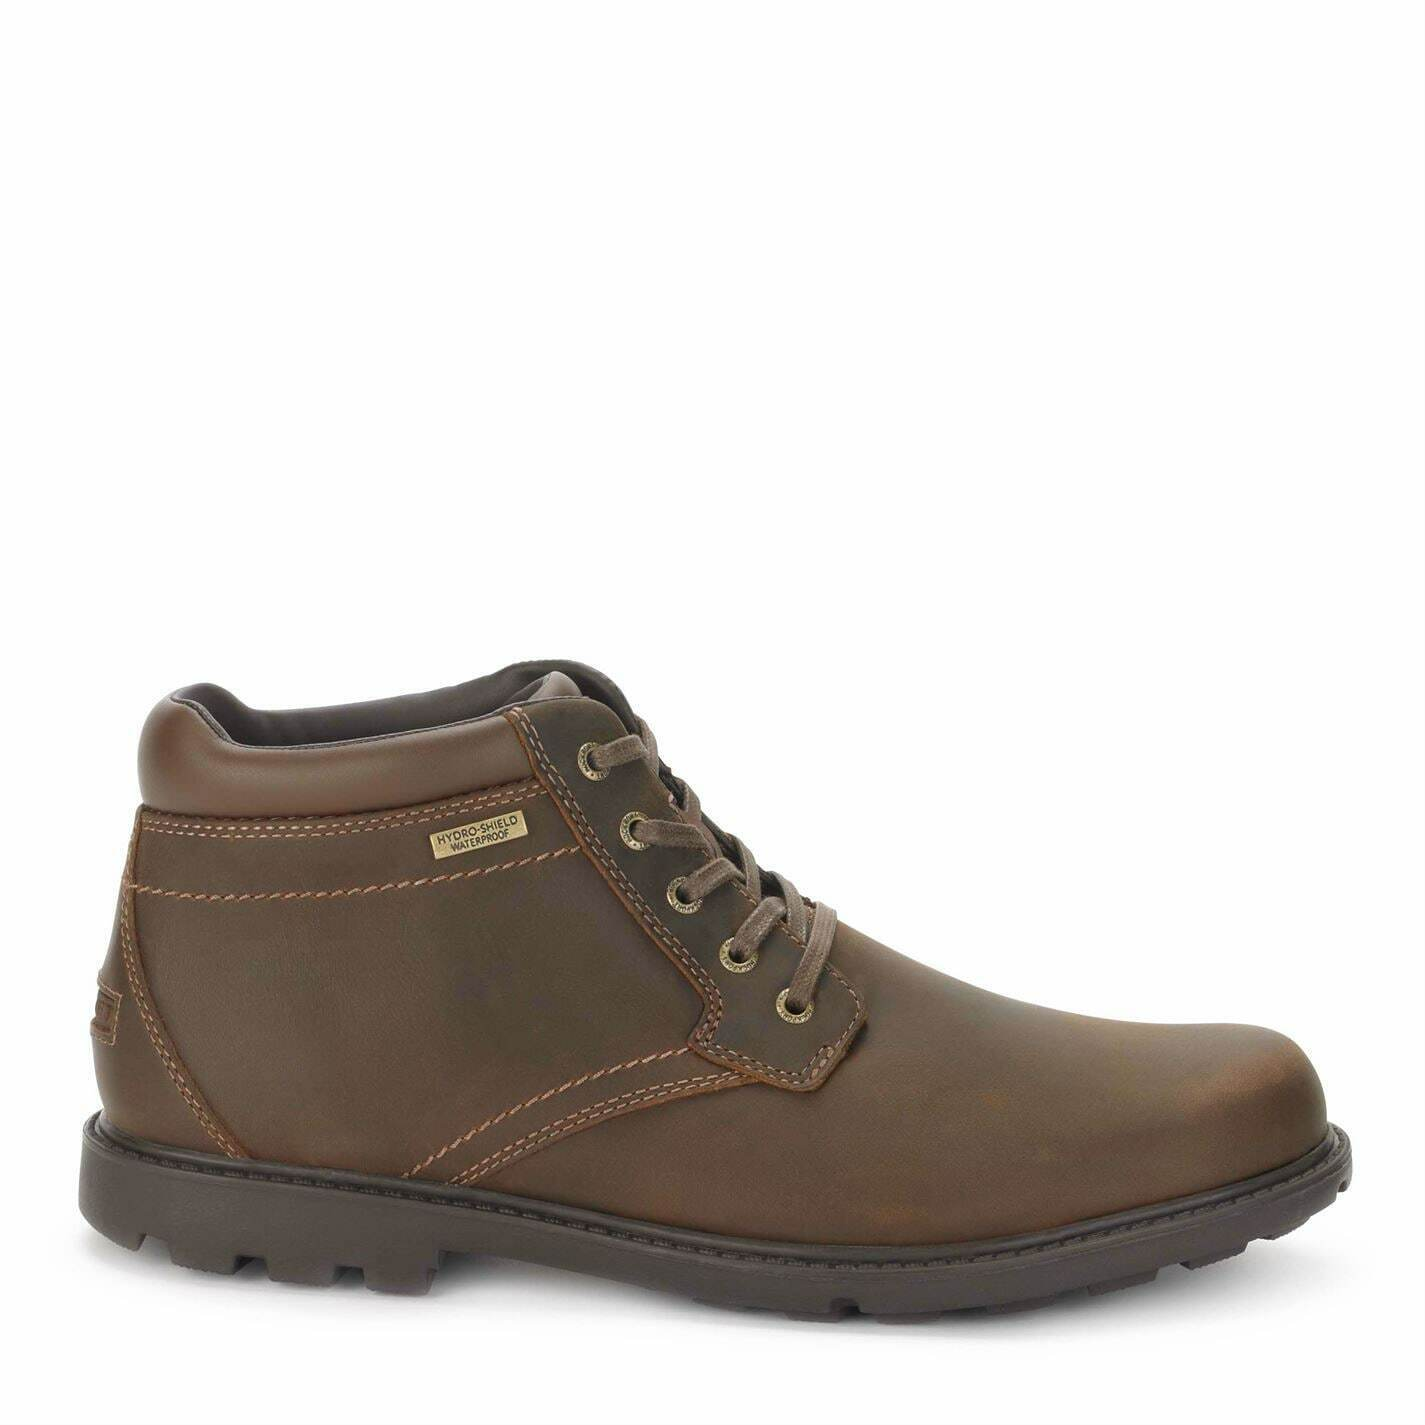 Rockport Rugged Bucks Water Repellent Boot Mens Gents Chukka Boots Laces